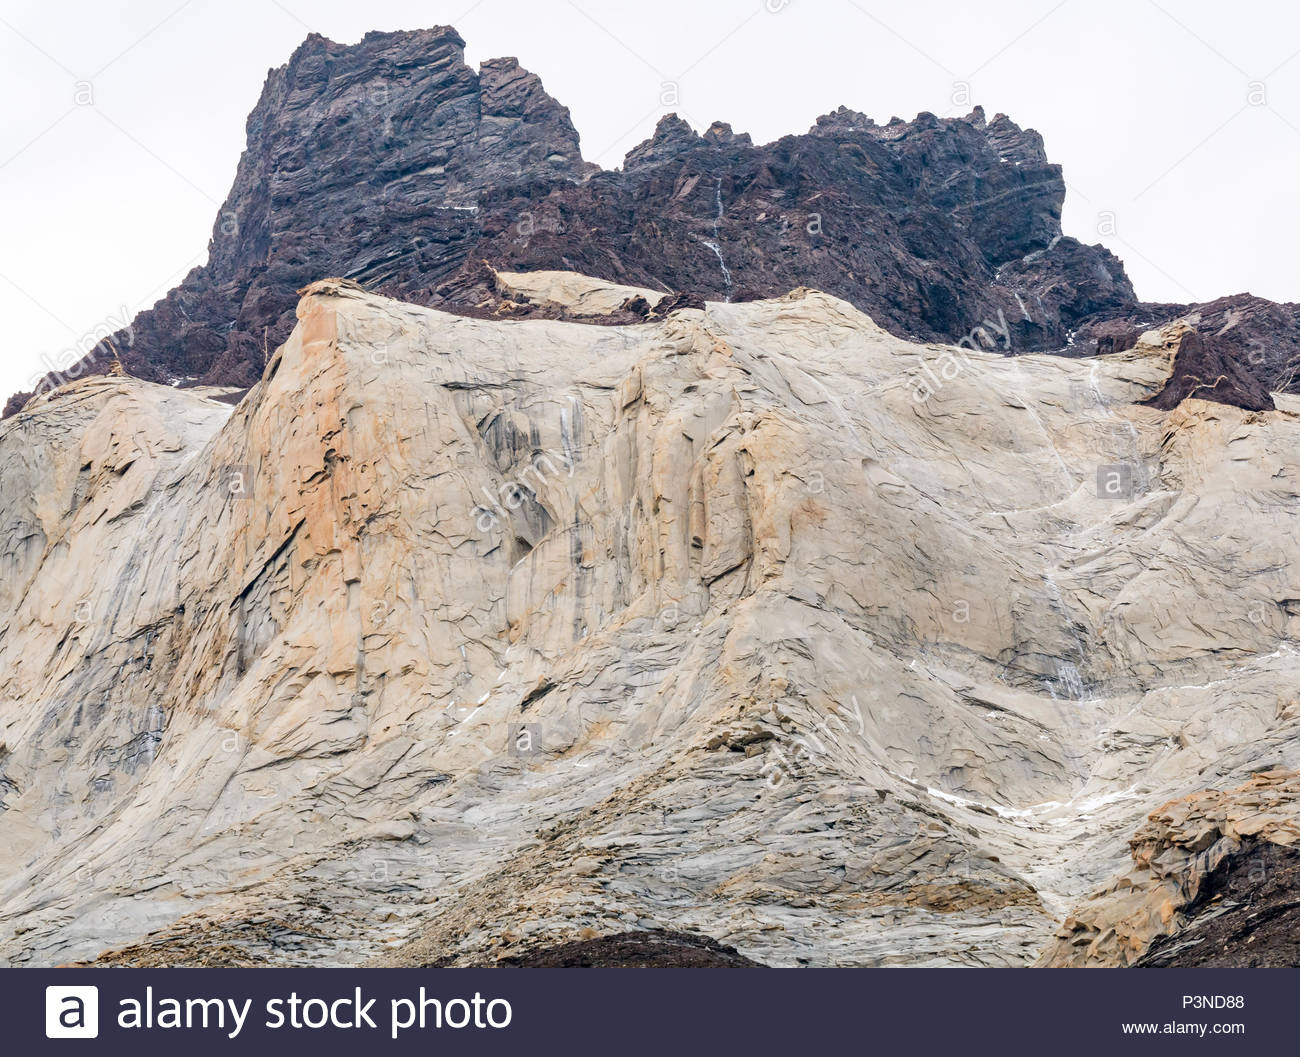 Zoomed view towering Paine Horns, Cuernos del Paine, showing granite intrusion Torres del Paine National Park, Patagonia, Chile, South America - Stock Image